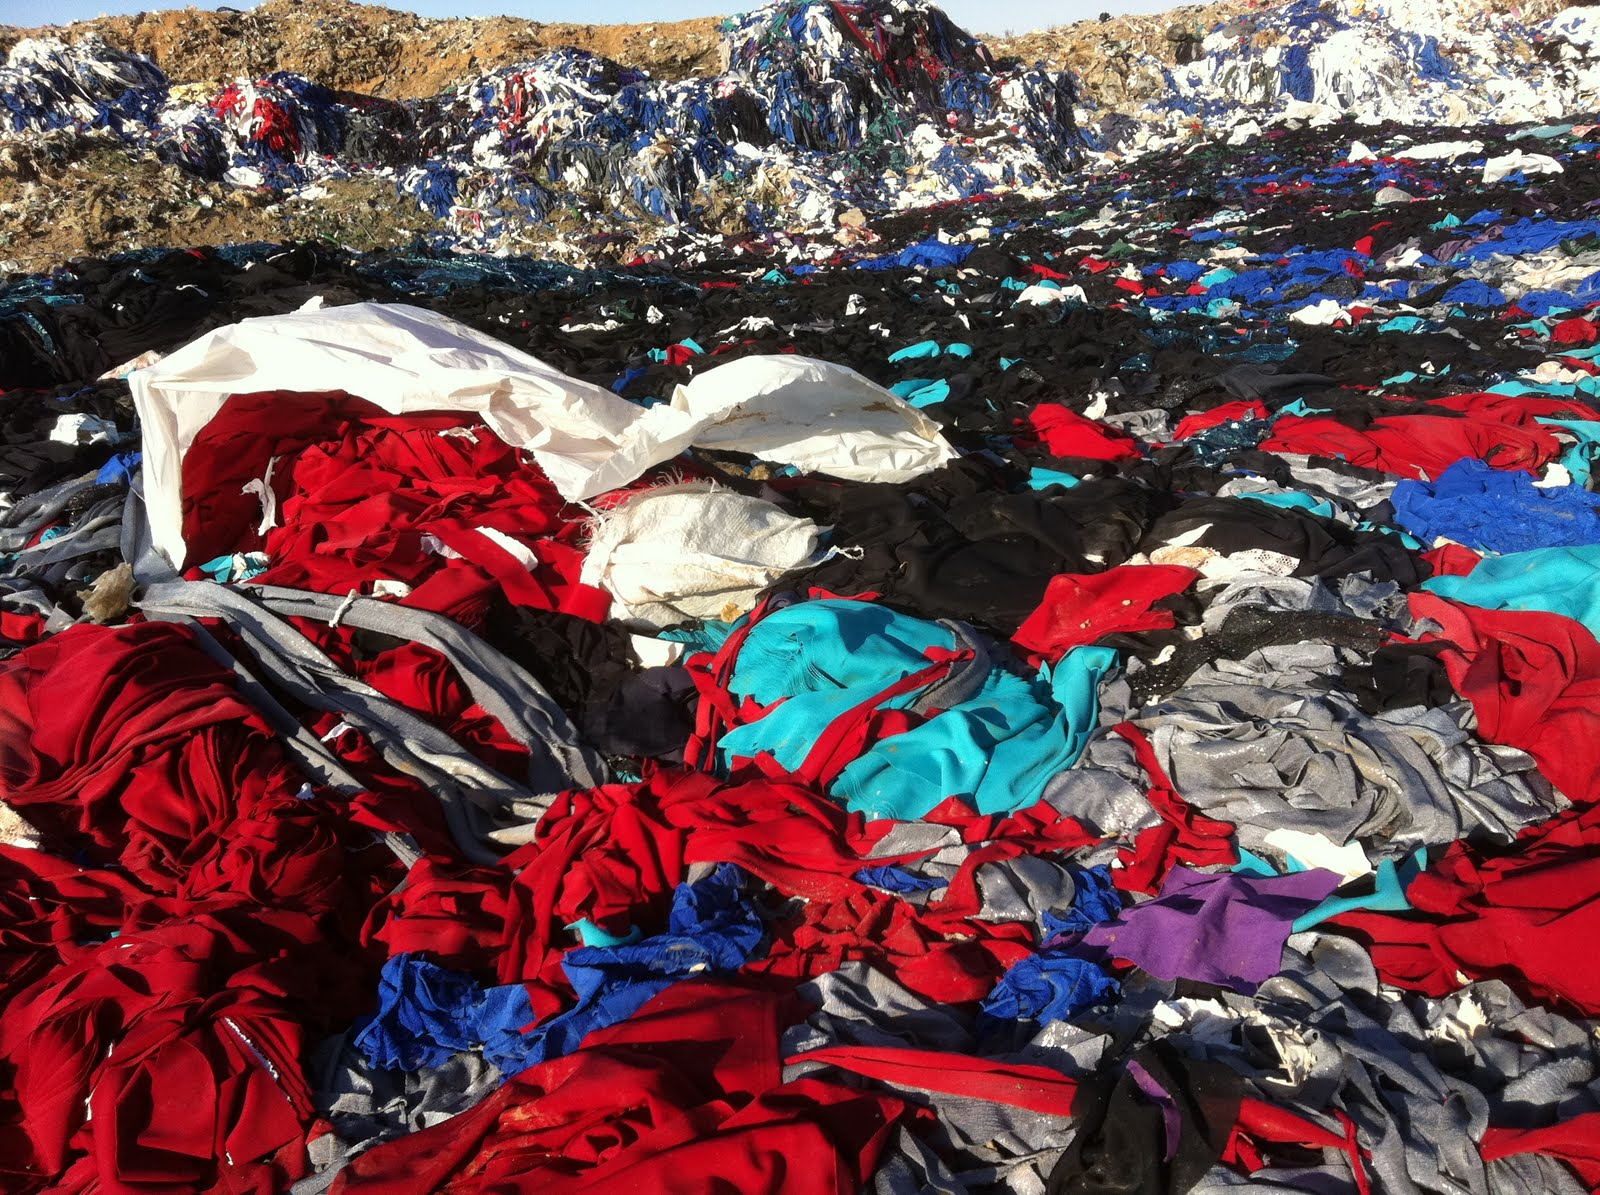 One of many landfill sites the outside world, where tons of fabric that could be used are trashed.